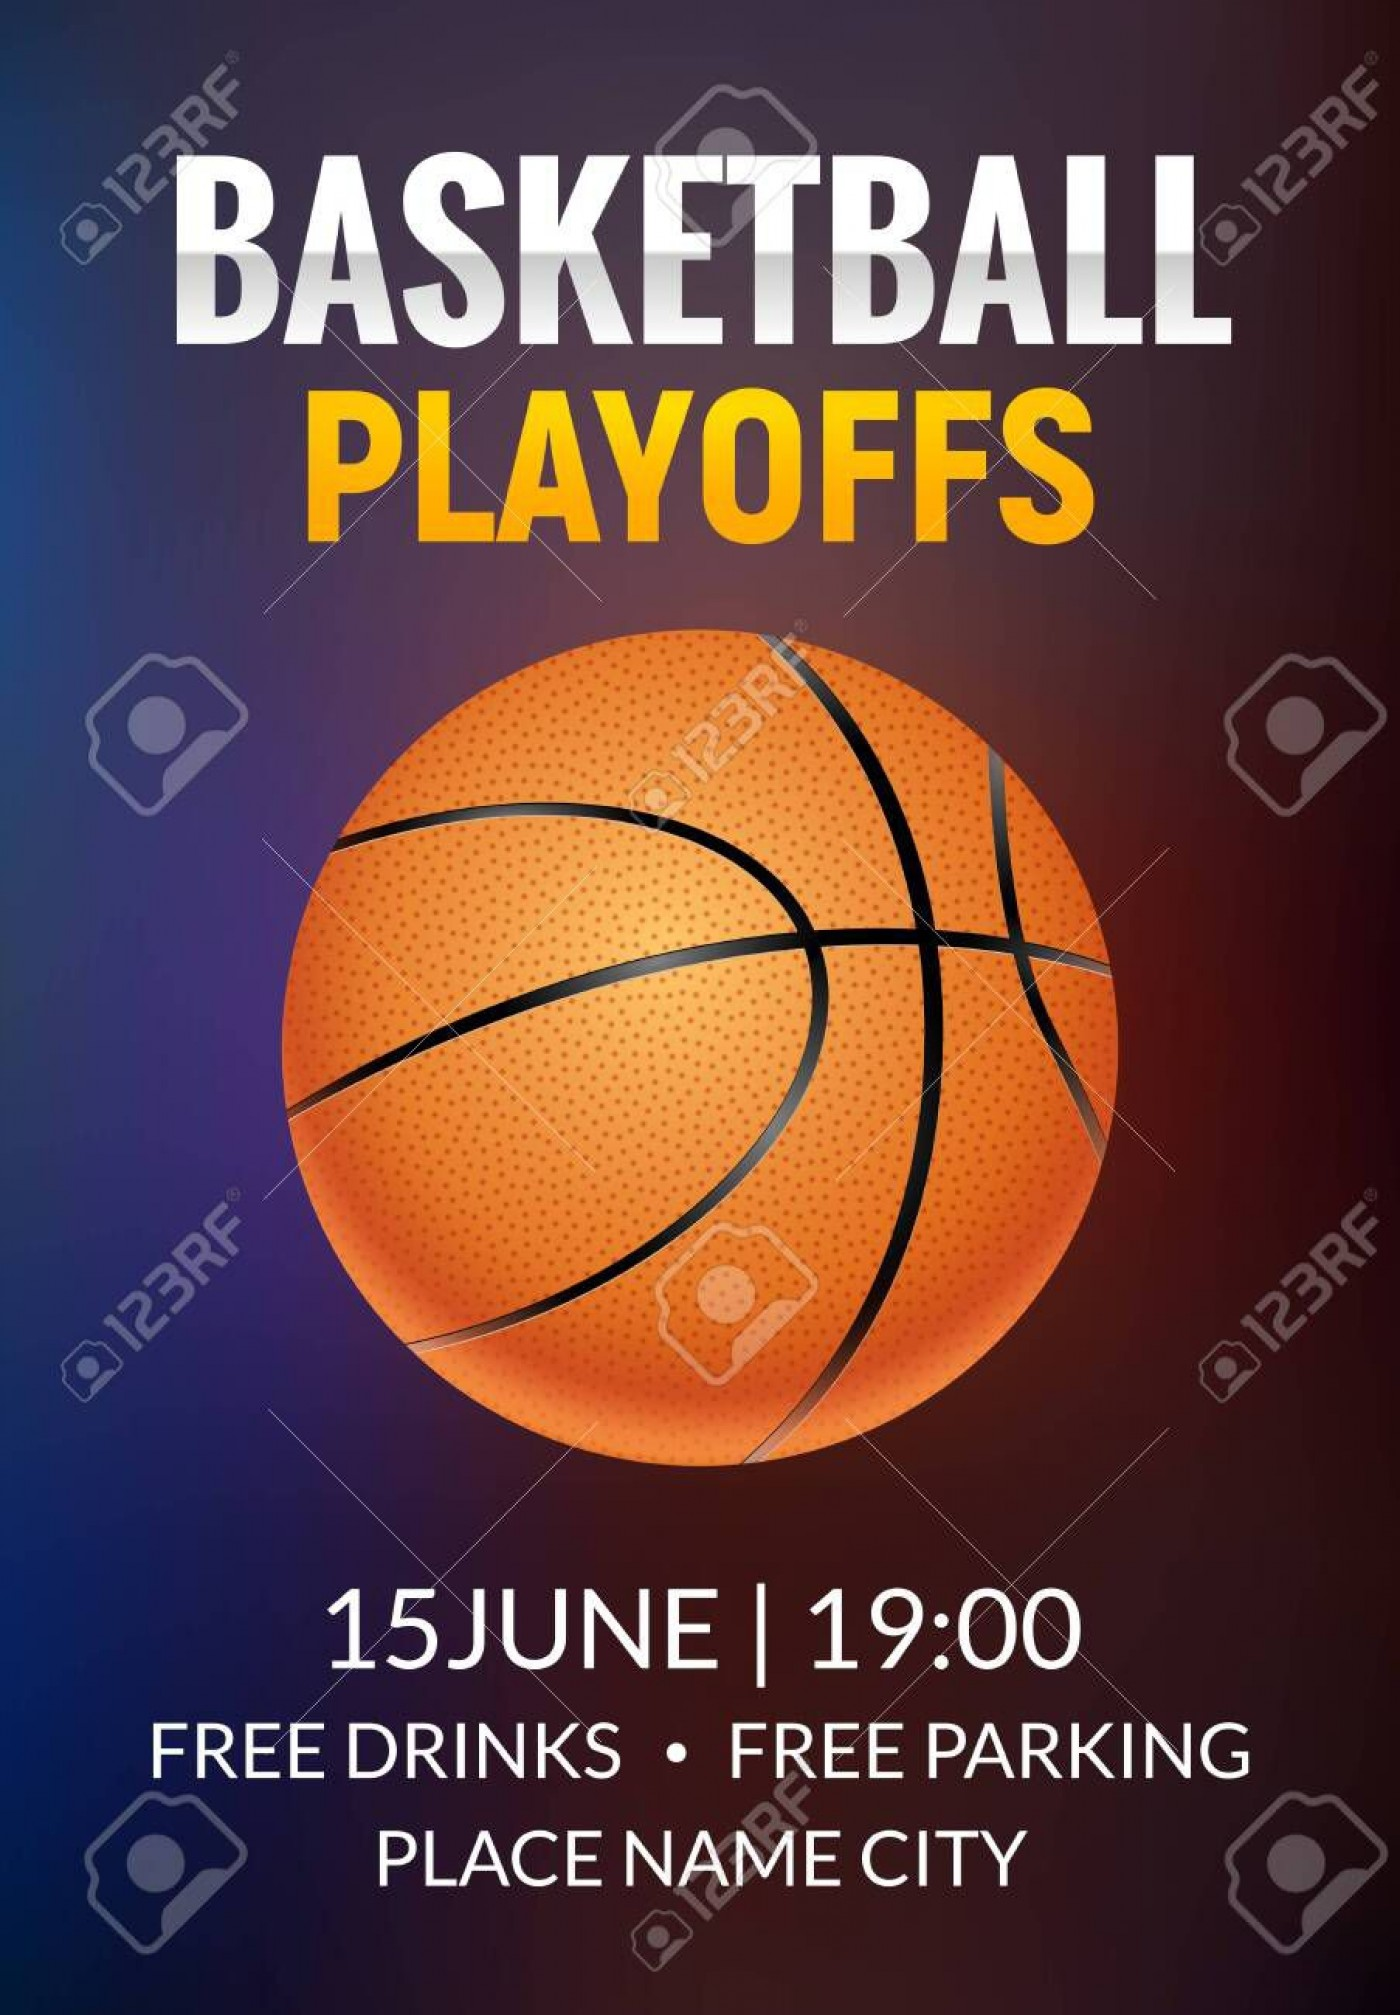 002 Formidable Basketball Tournament Flyer Template High Resolution  3 On Free1400